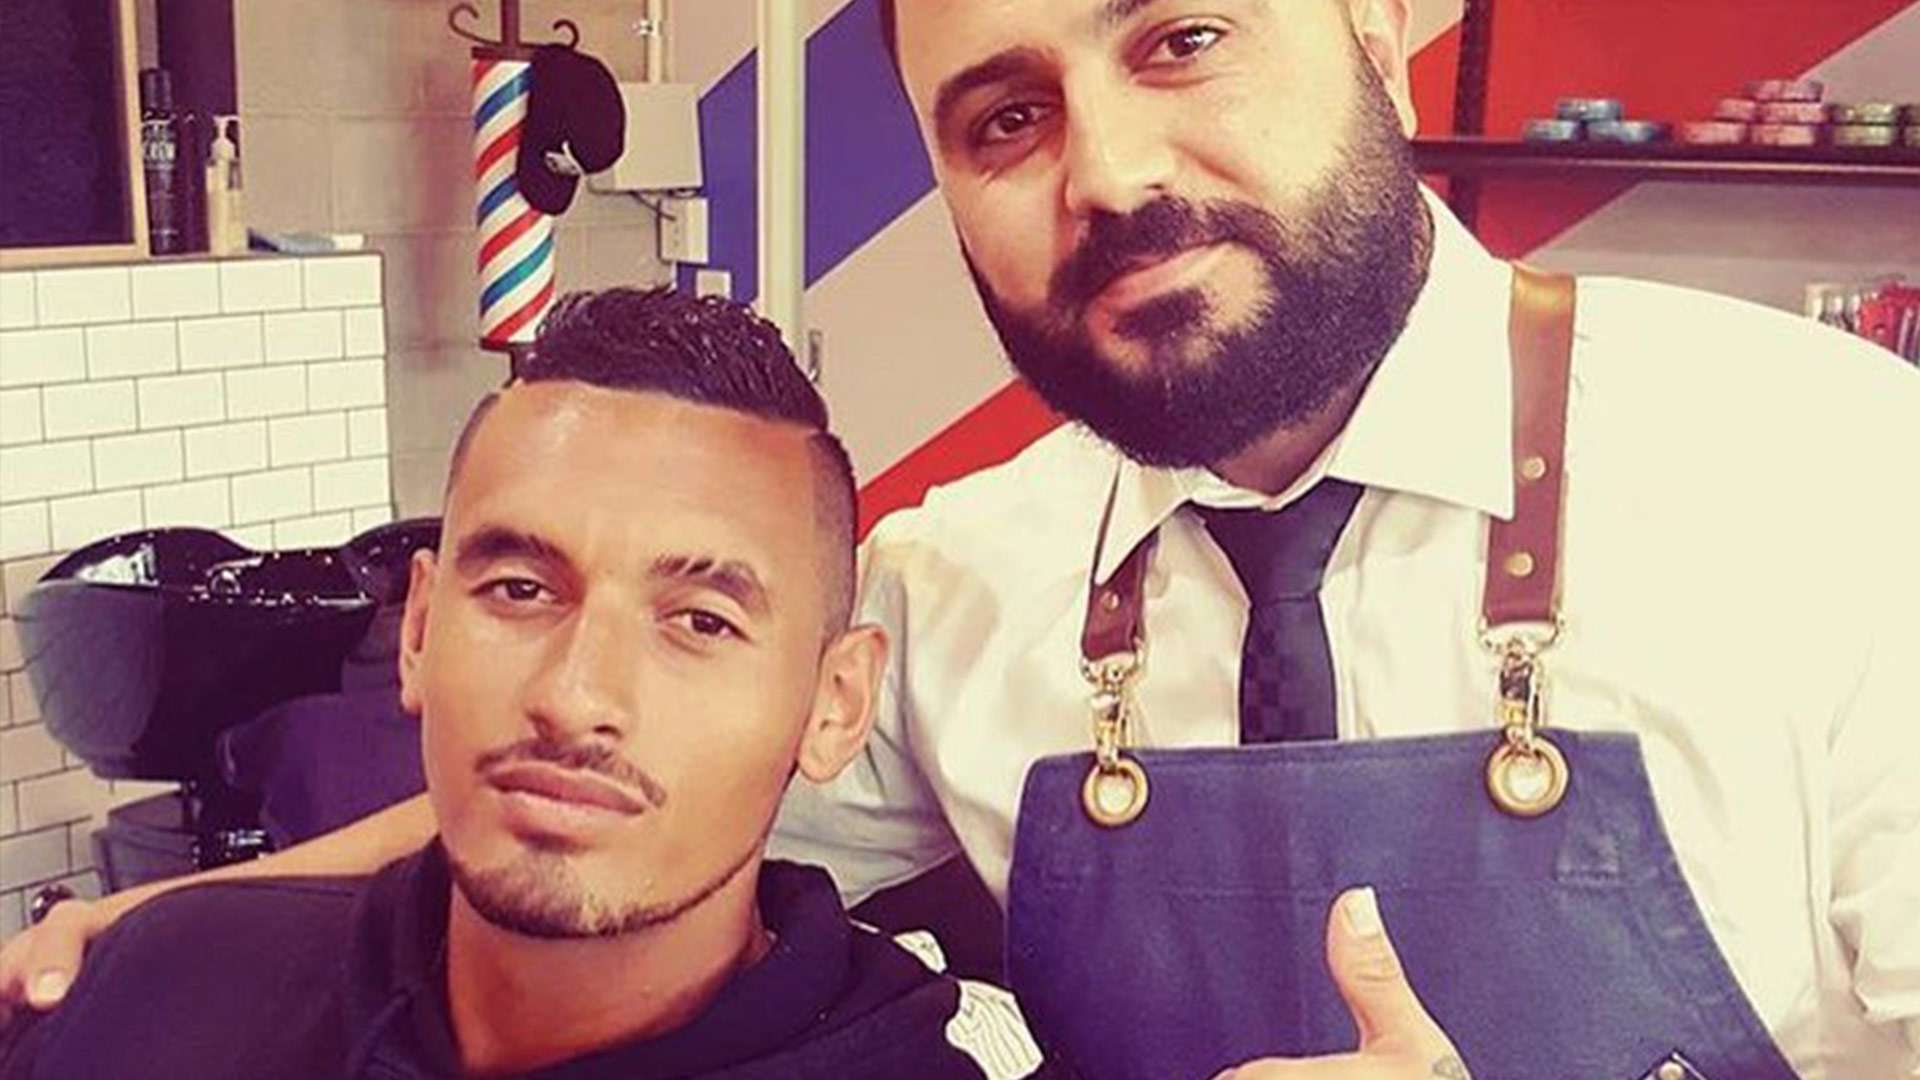 Nick Kyrgios is spotted getting his hair style at Dapper Gents Barbershop